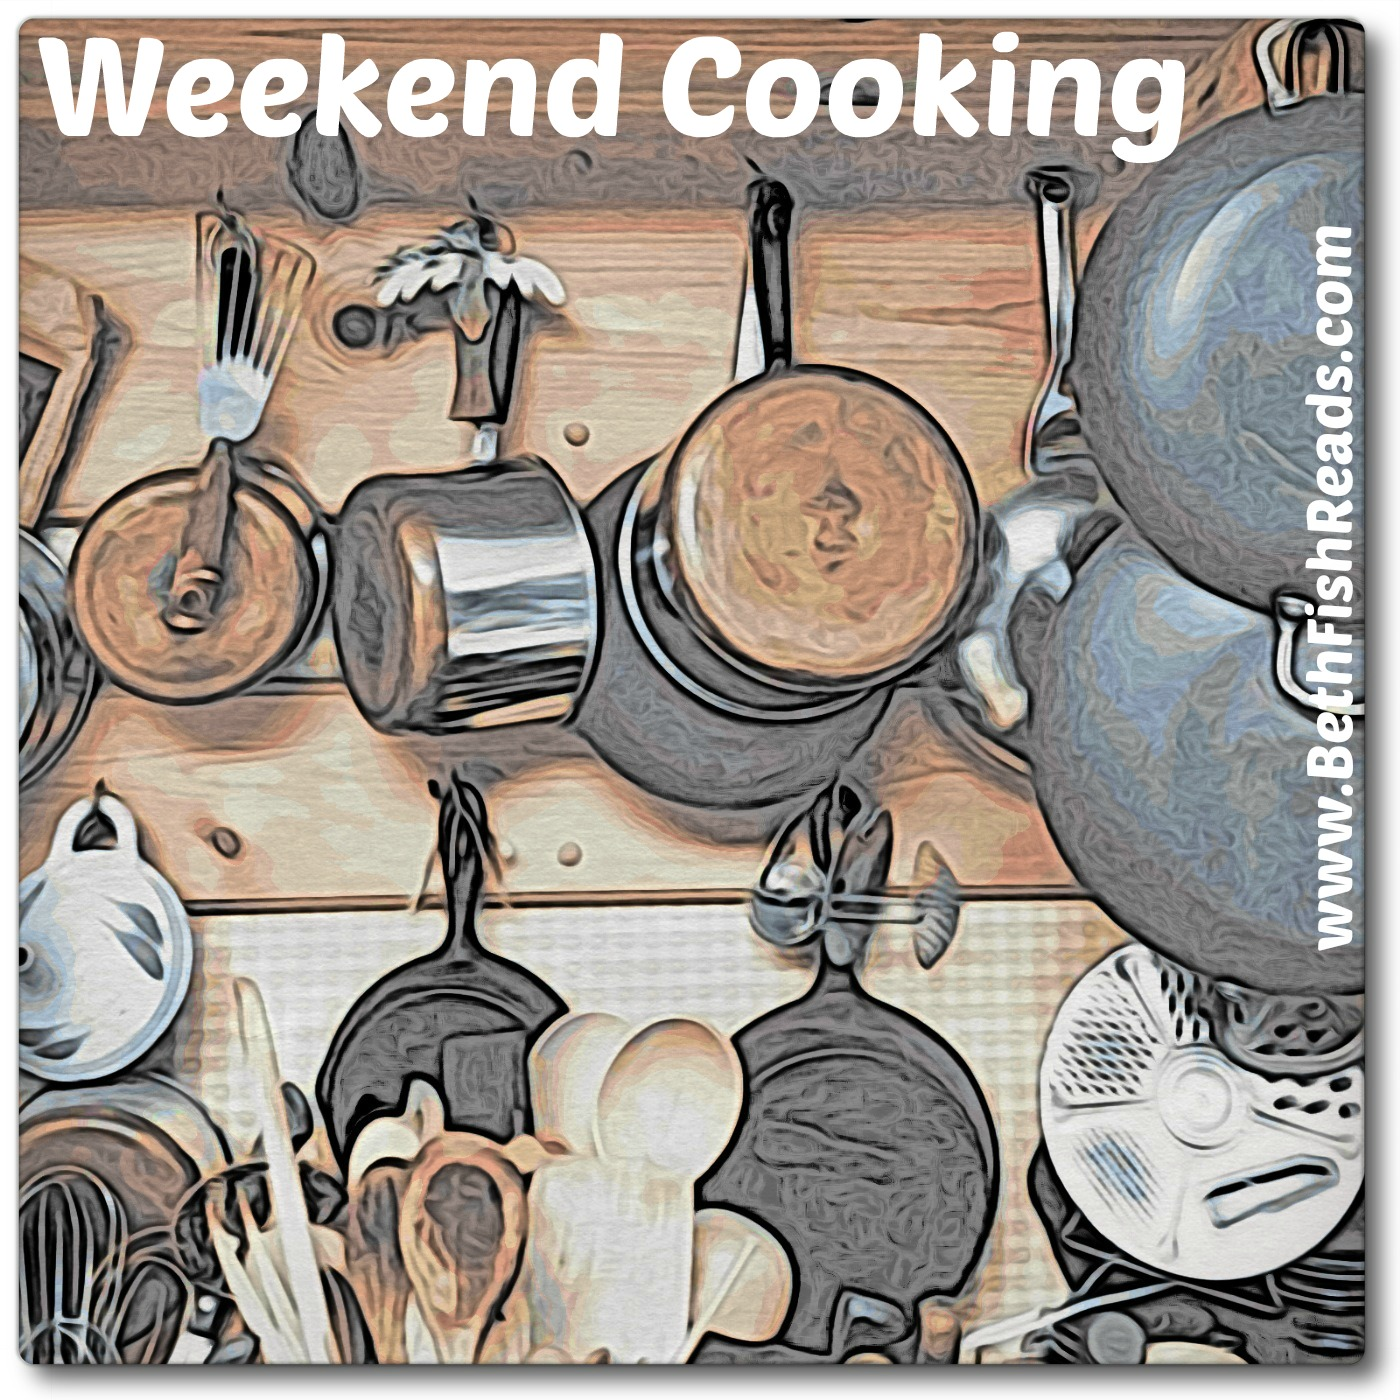 Weekend Cooking: A Recipe for Flu and Virals